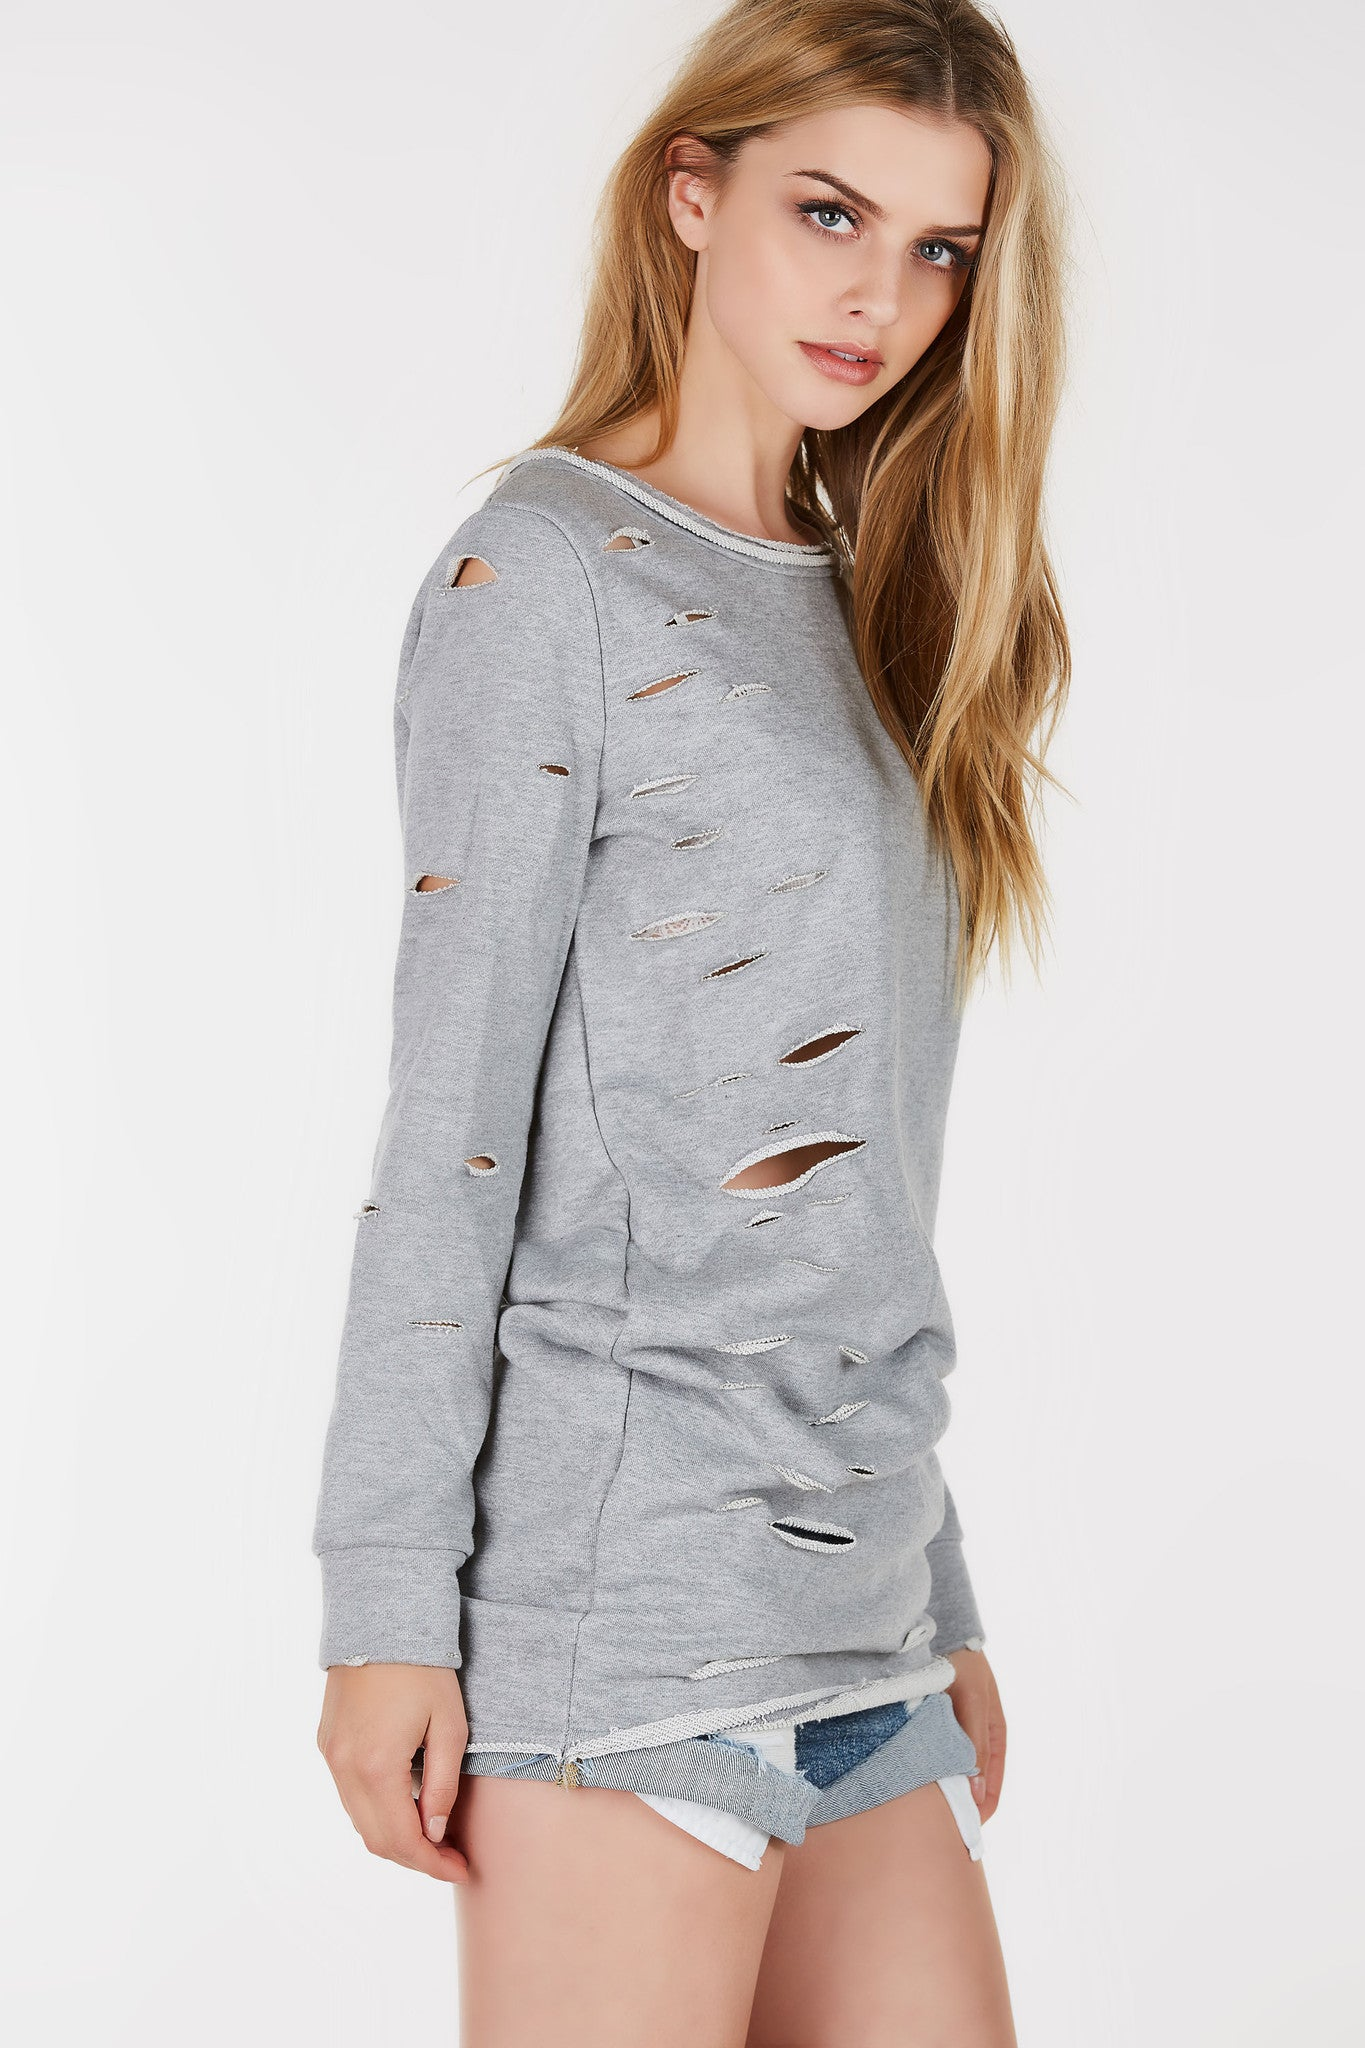 Out Of Control Distressed Tunic Dress